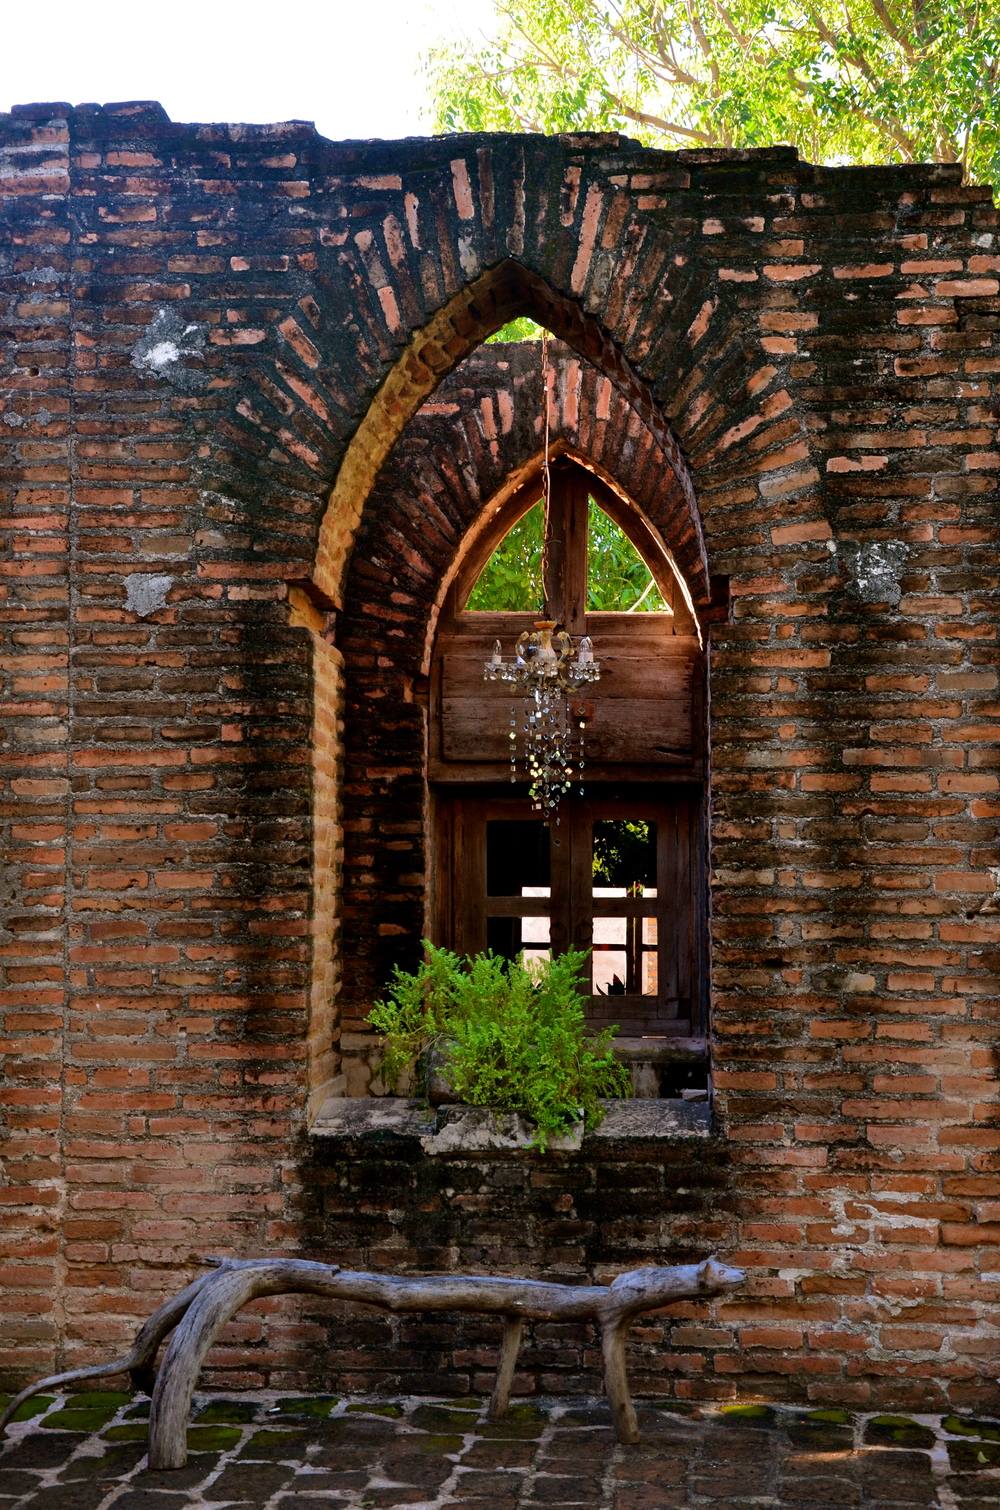 Awesome inside ruins